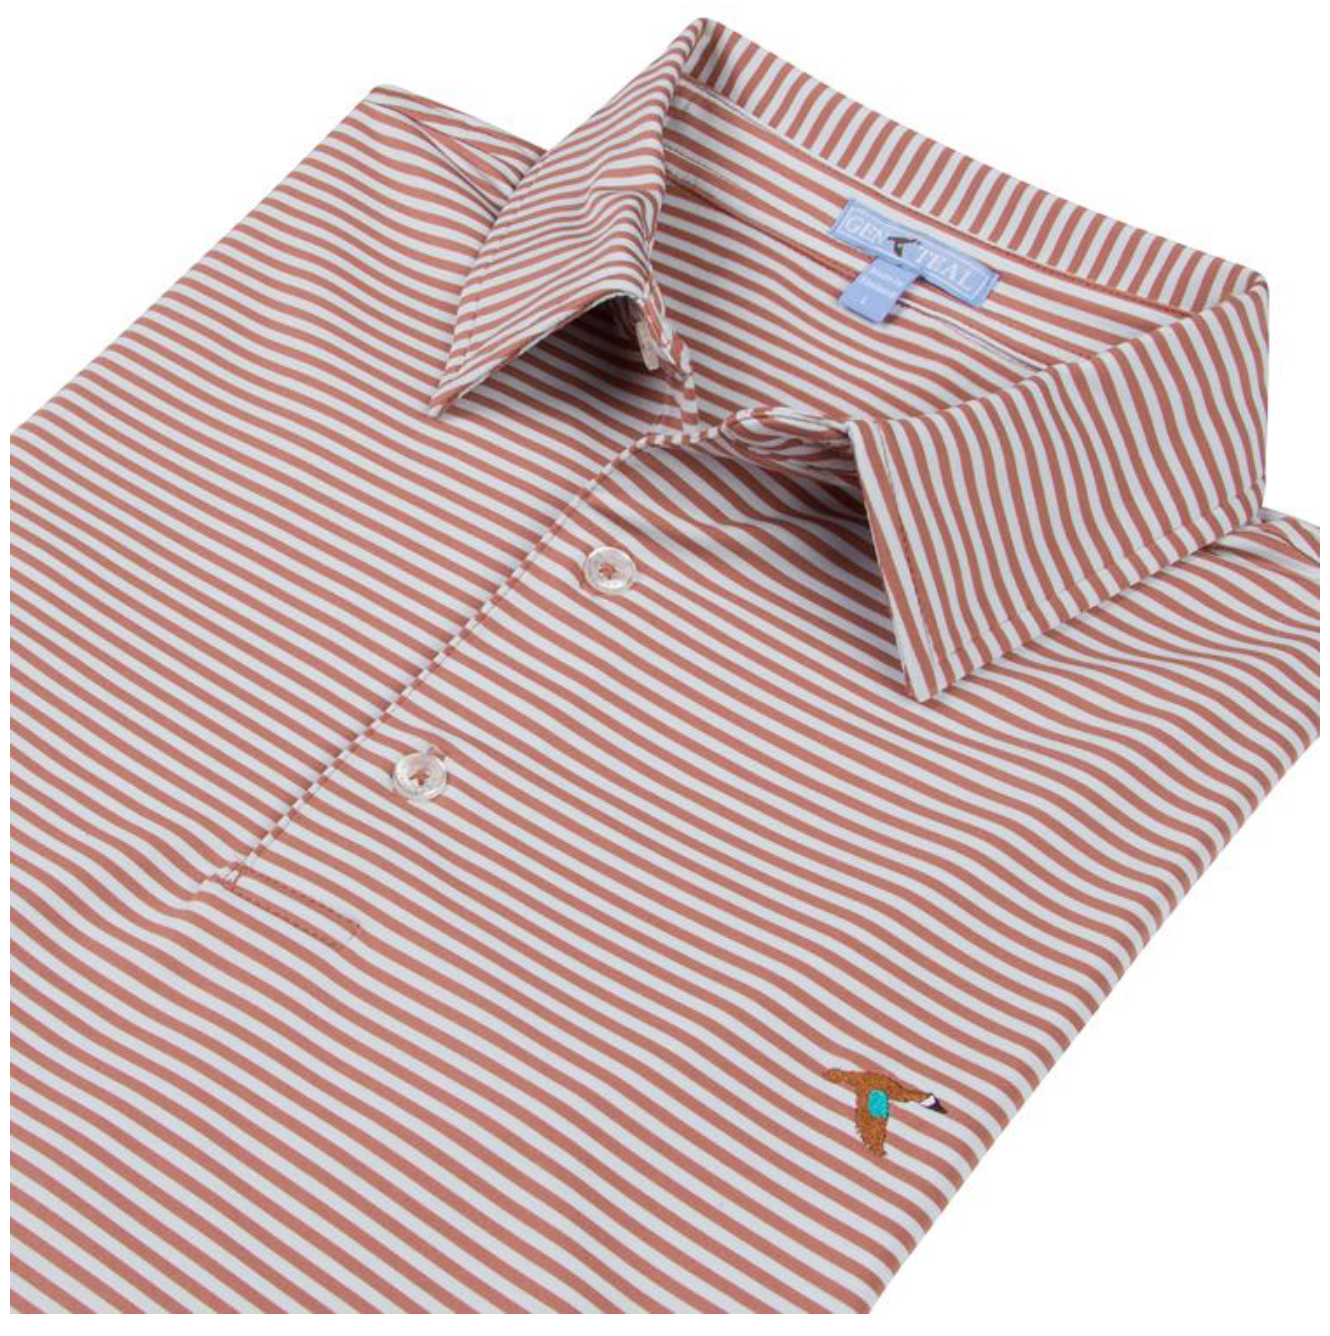 Genteal Seaside Stripe Polo - Adobe